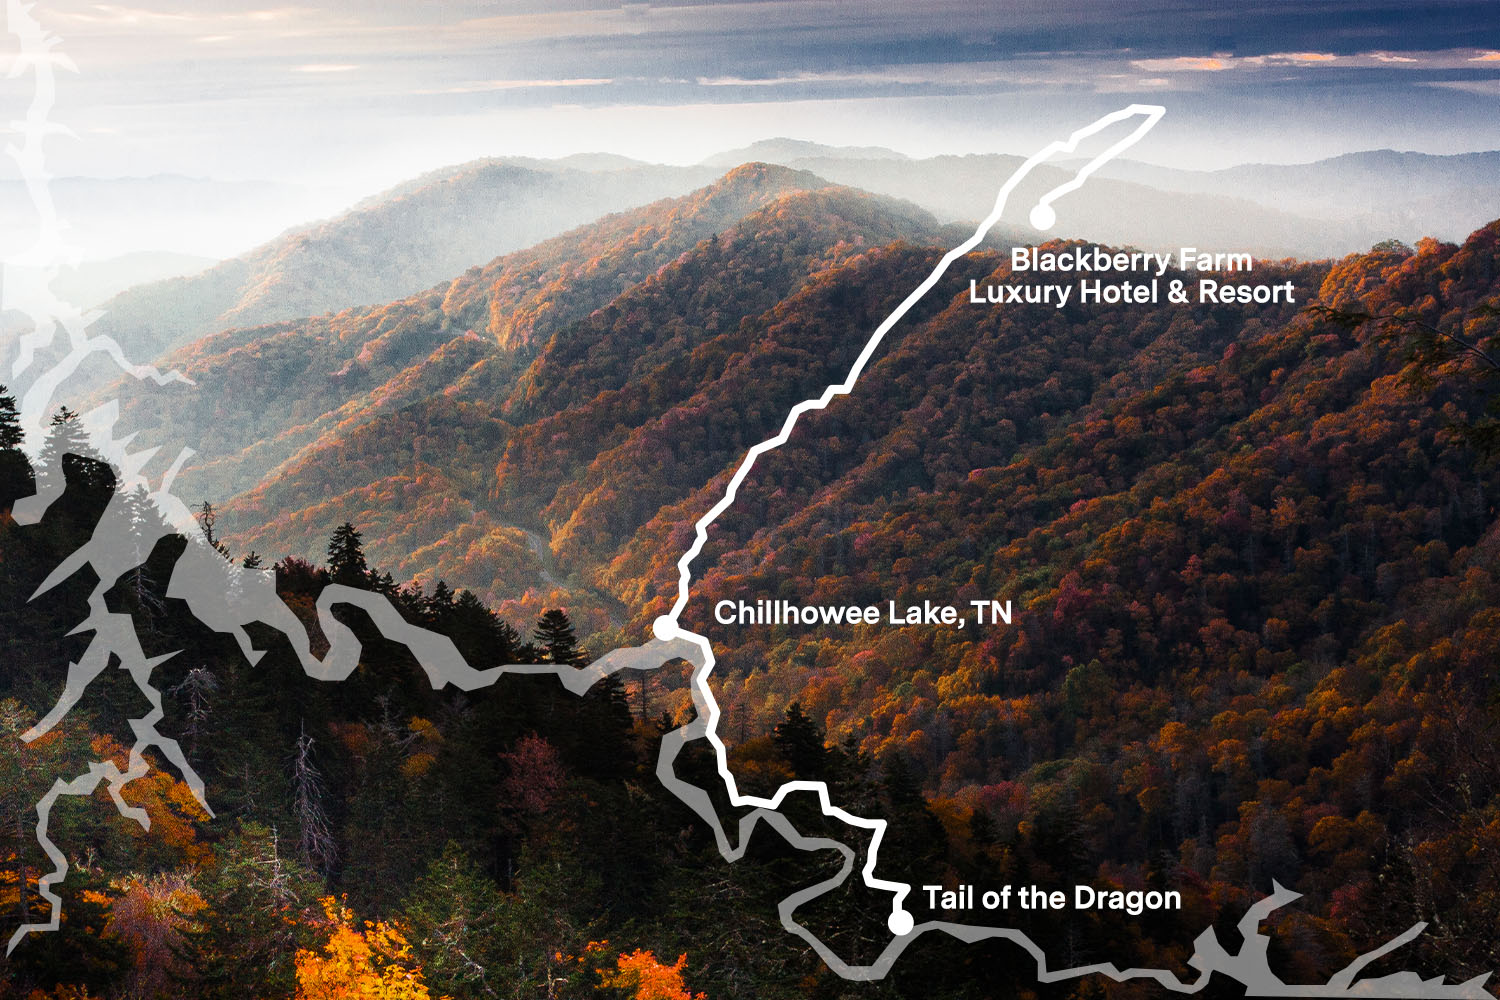 The Best Scenic Drive in Appalachia, US 129 in NC and TN, or The Tail of the Dragon, runs through Great Smoky Mountains National Park